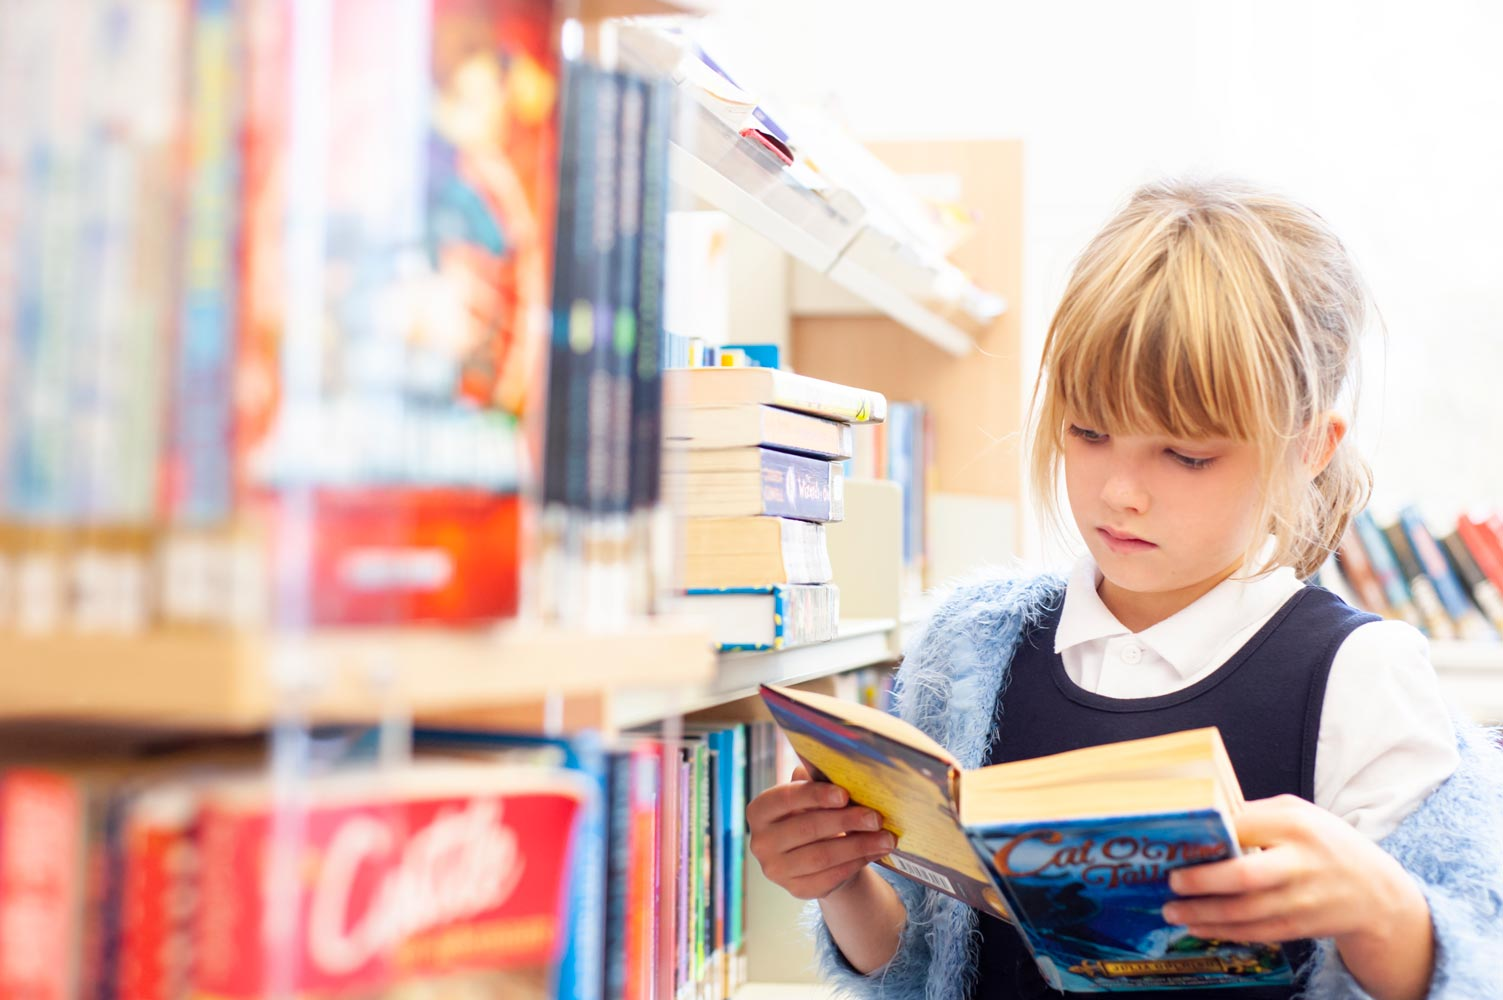 School pupil reading in the school library